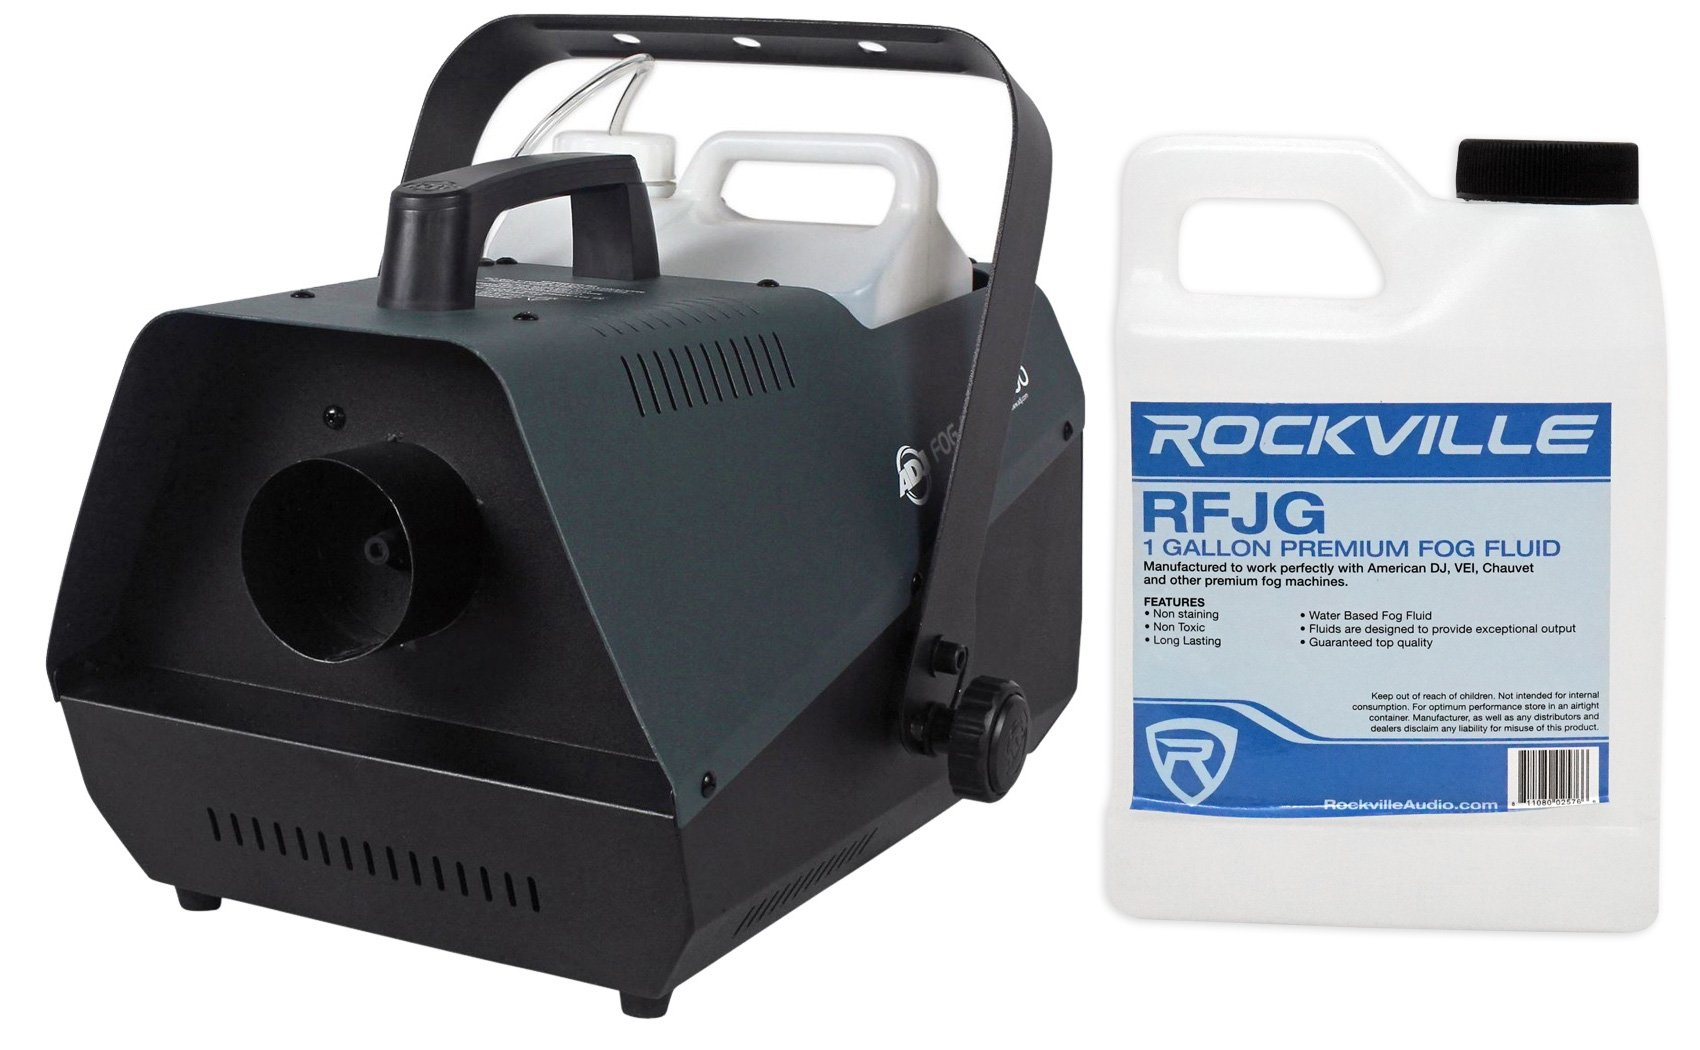 Package: American DJ Fog Fury 3000 1500 Watt High Output Fog Machine With Wired Remote and a Specialized Pipeline System That Minimizes Clogging + Rockville RFJG Gallon Fog/Smoke Juice Fluid